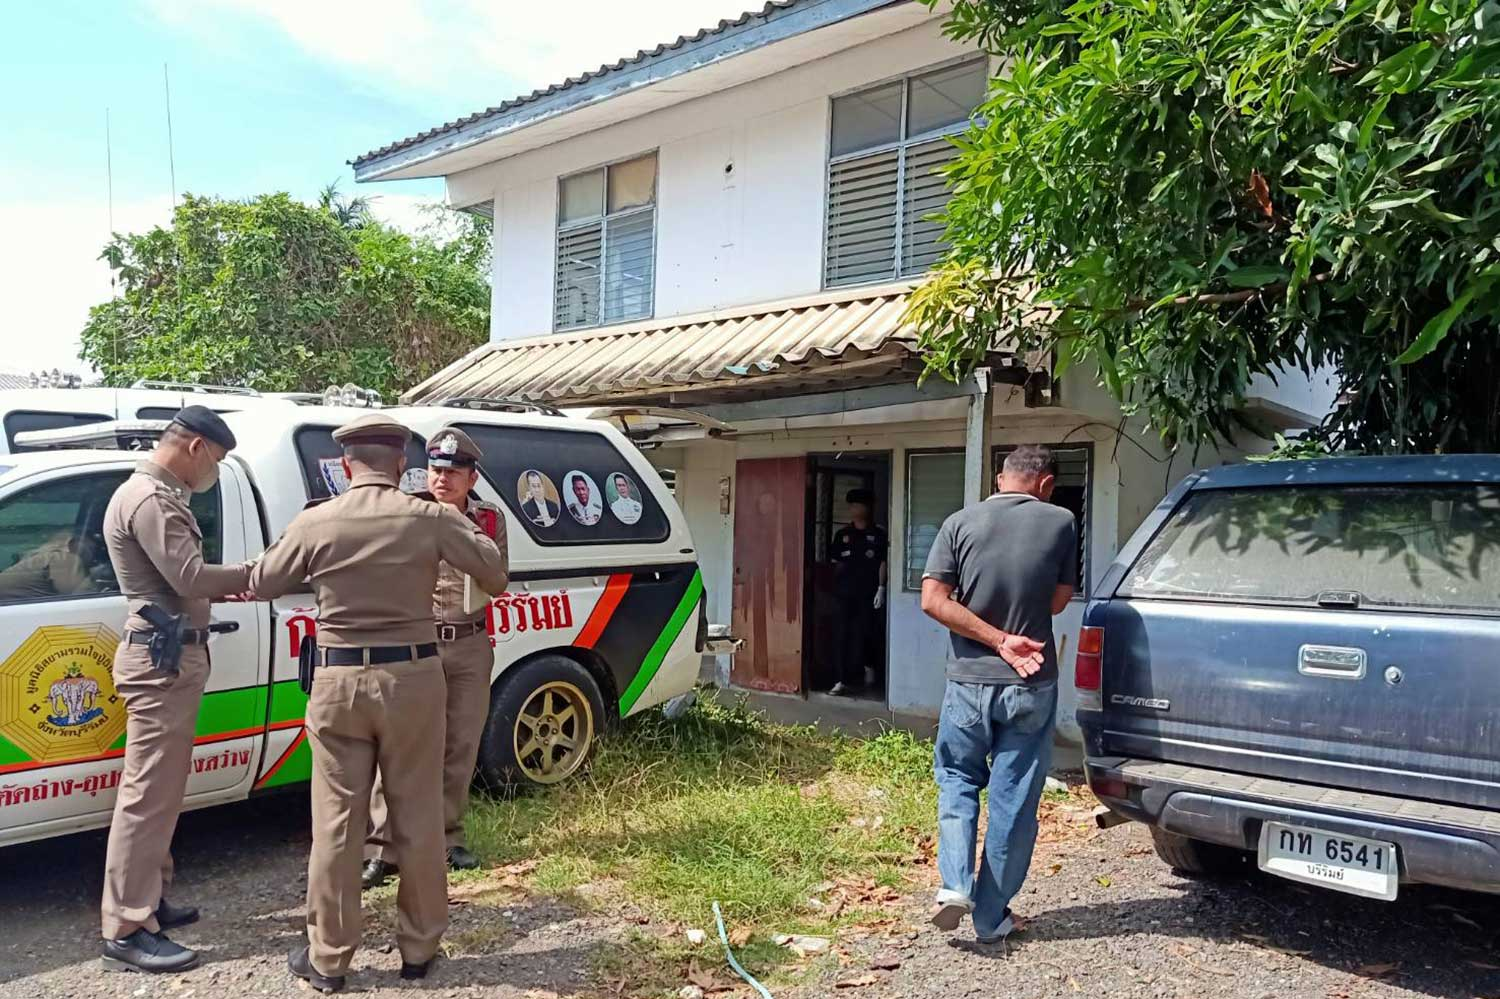 Police inspect the house where Pol Lt Col Supasit Somsri, 48, was found hanged, in Nang Rong district, Buri Ram. (Photo by Surachai Pirangsa)